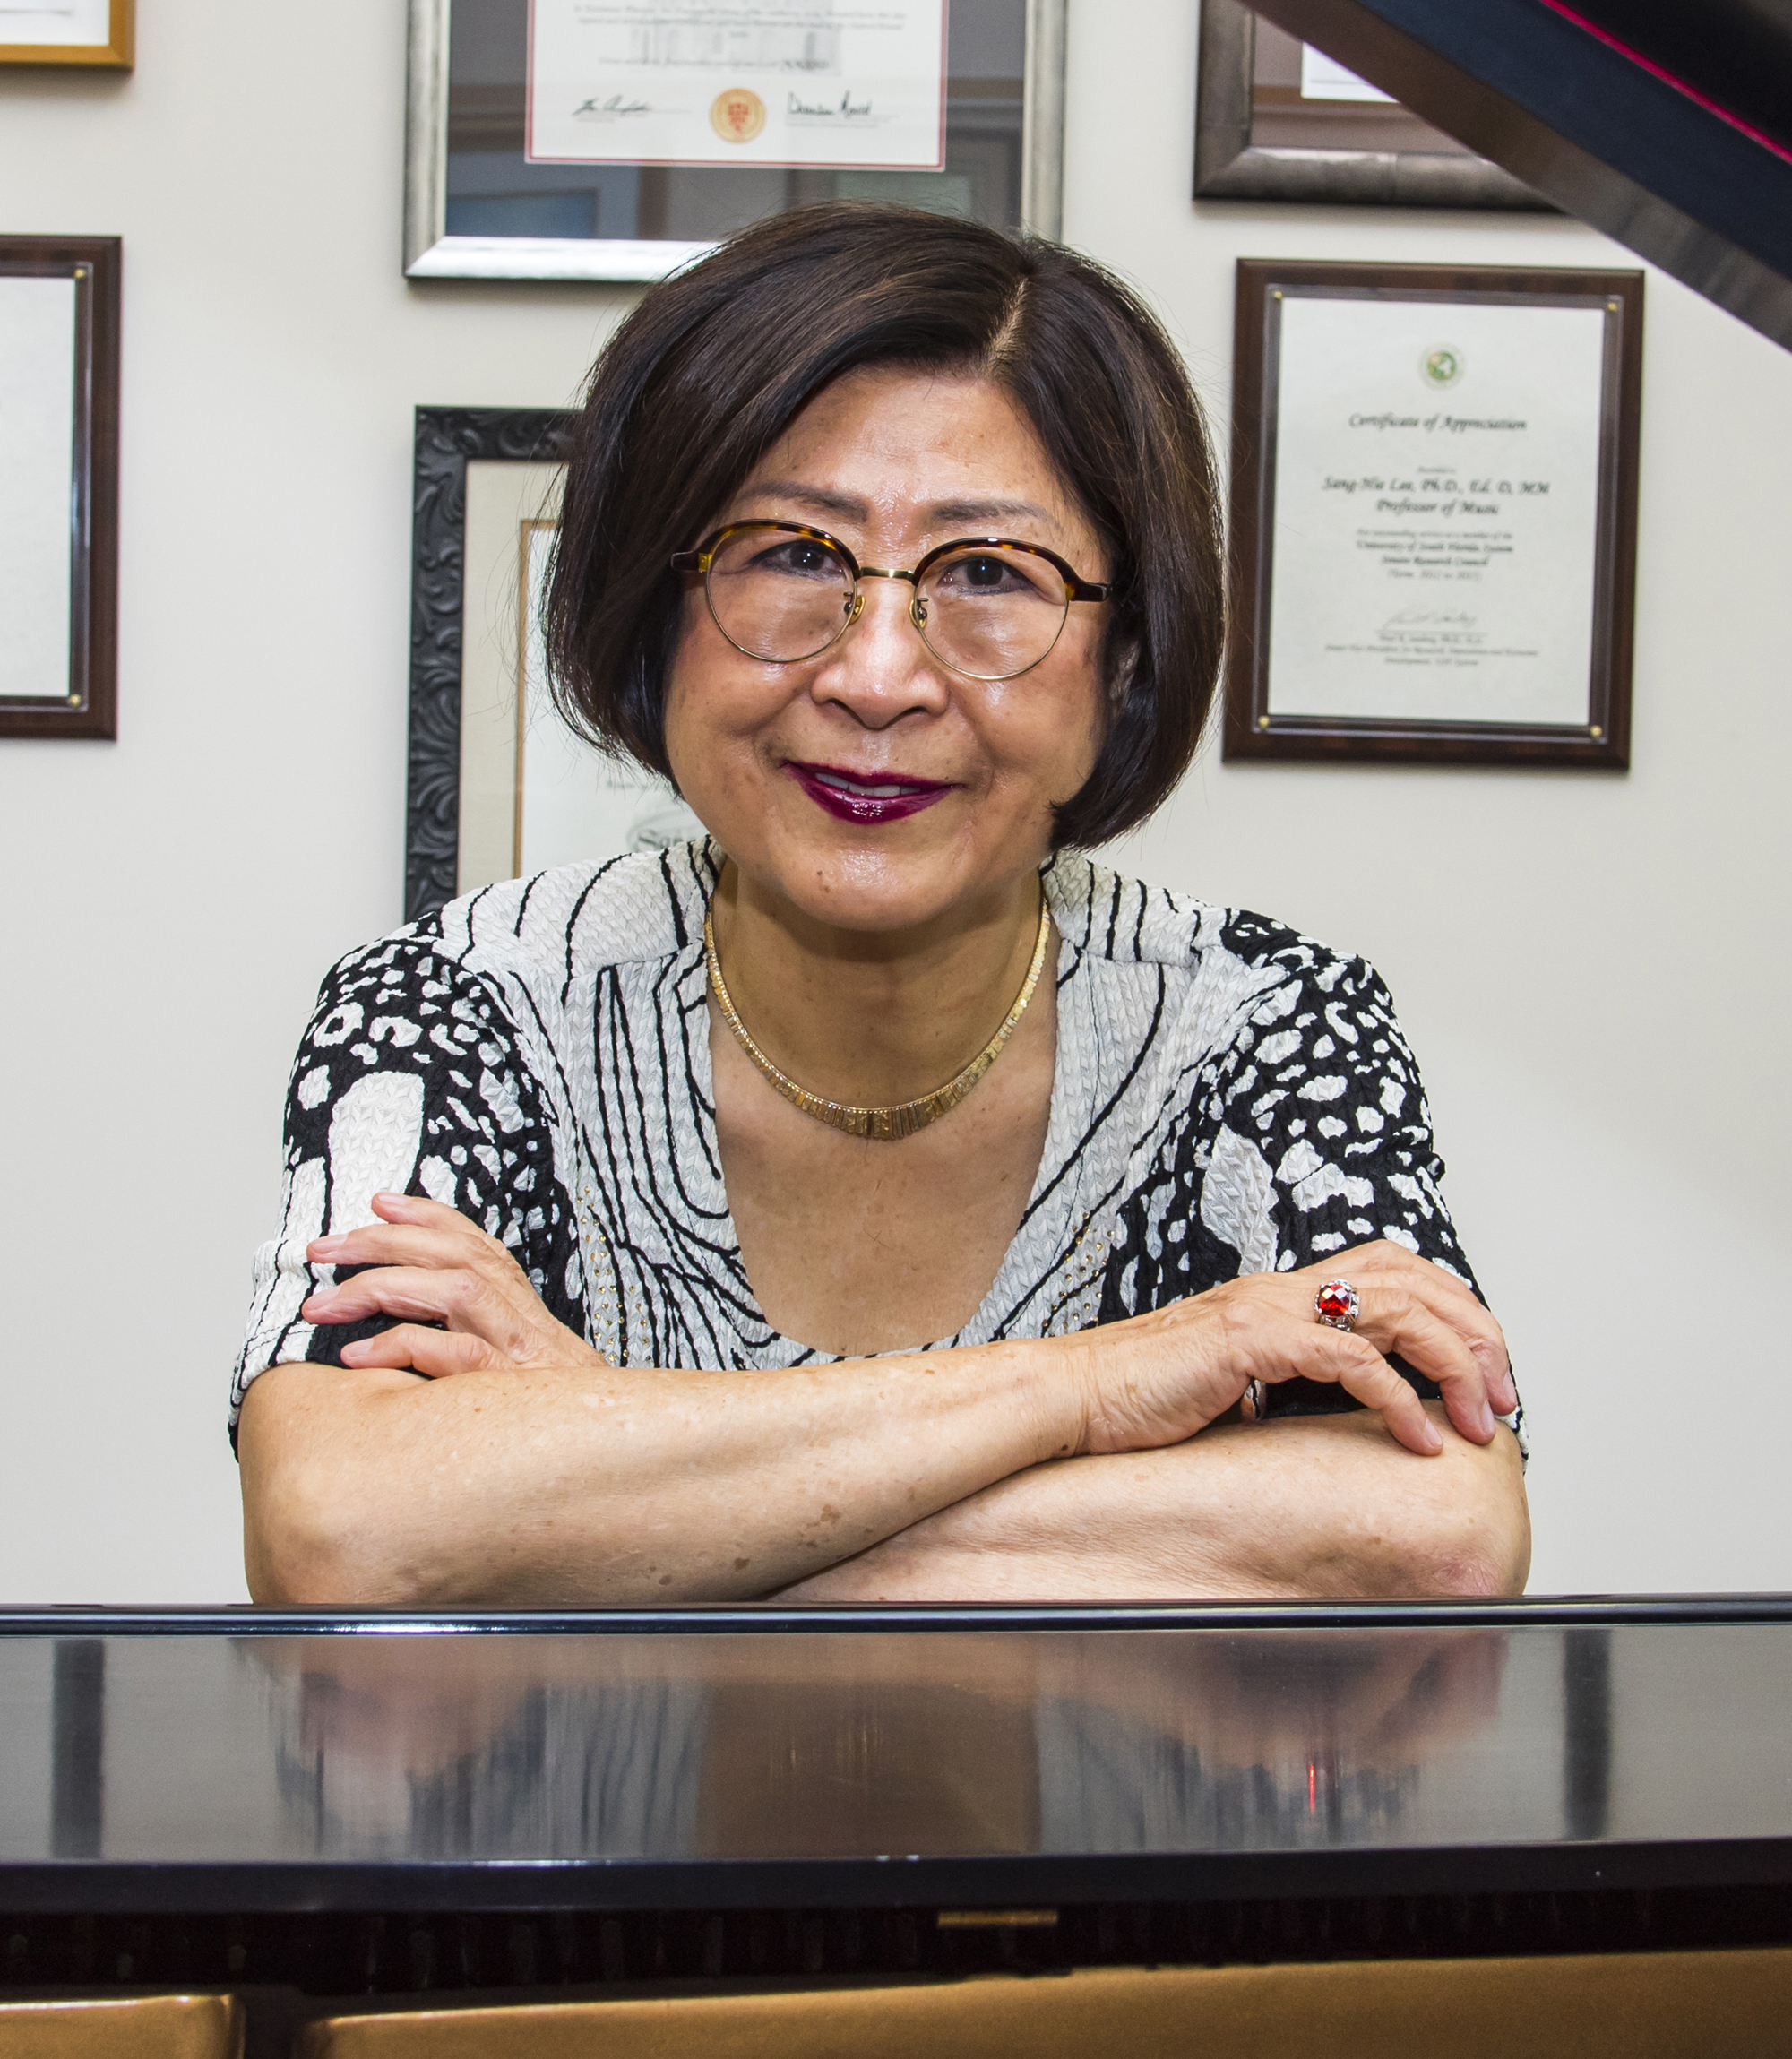 Sang-Hie Lee, PhD, Professor of Music in the Department of Music Medicine & Research, at USF